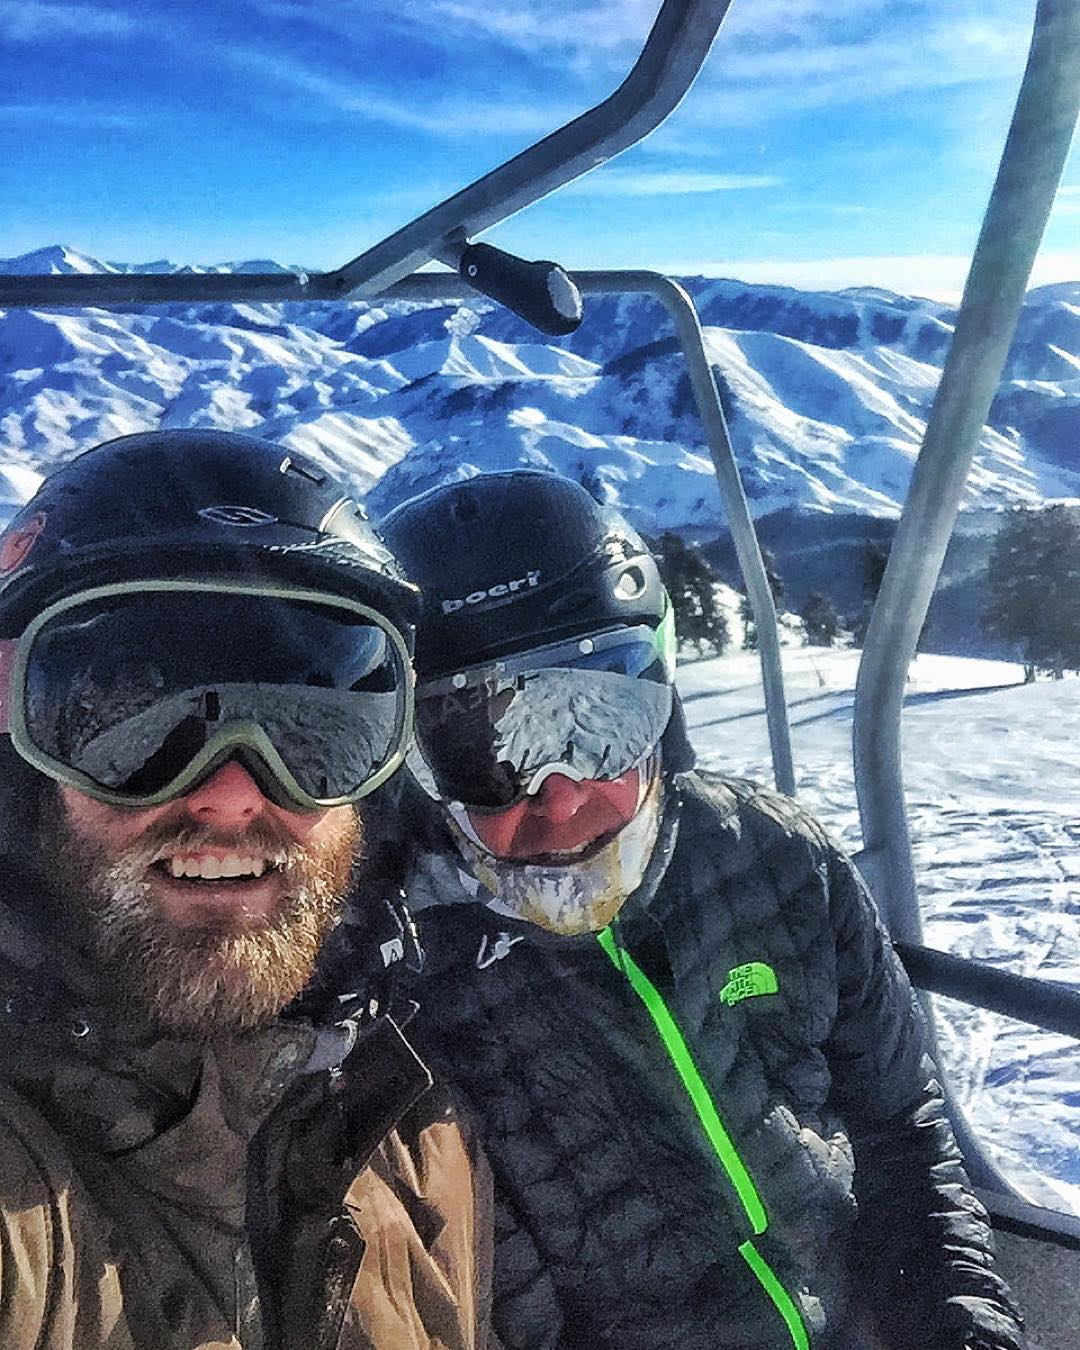 Merry Christmas!! #PHGB Co-founders enjoying a father & son ski day || From our family to yours, happy holidays !!